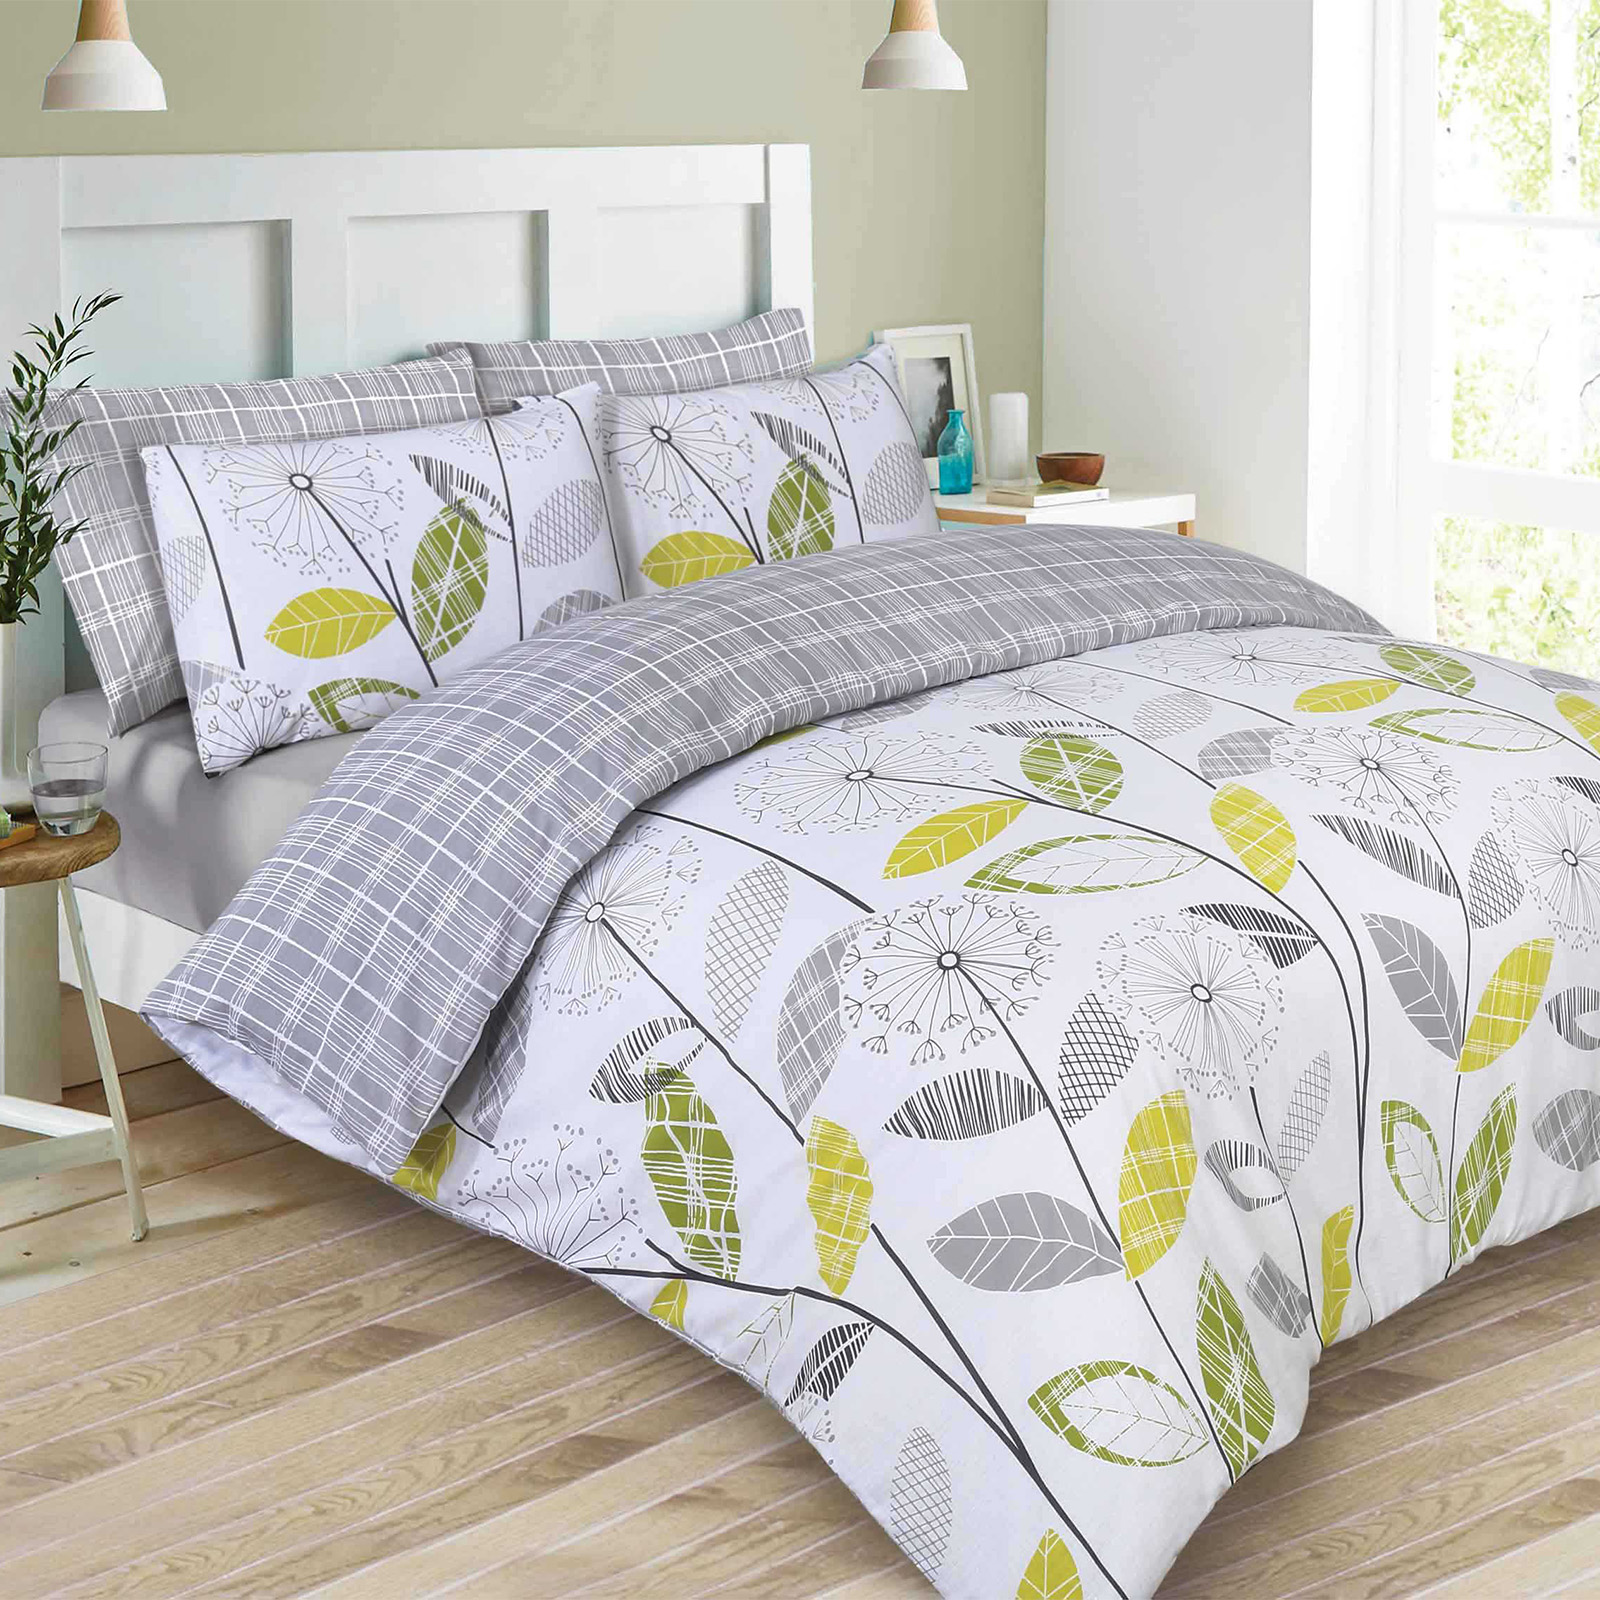 Pottery Barn Kids Bedding PBteen Bedding PBdorm Bedding Introducing Our Lodge Quilt Collection. Shop New Arrivals. Bath Bath. Bath Towels Bath Towel Collections Bath Rugs GIRLS DUVET COVERS at Pottery Barn Kids BOYS DUVET COVERS at Pottery Barn Kids. TEEN GIRLS.